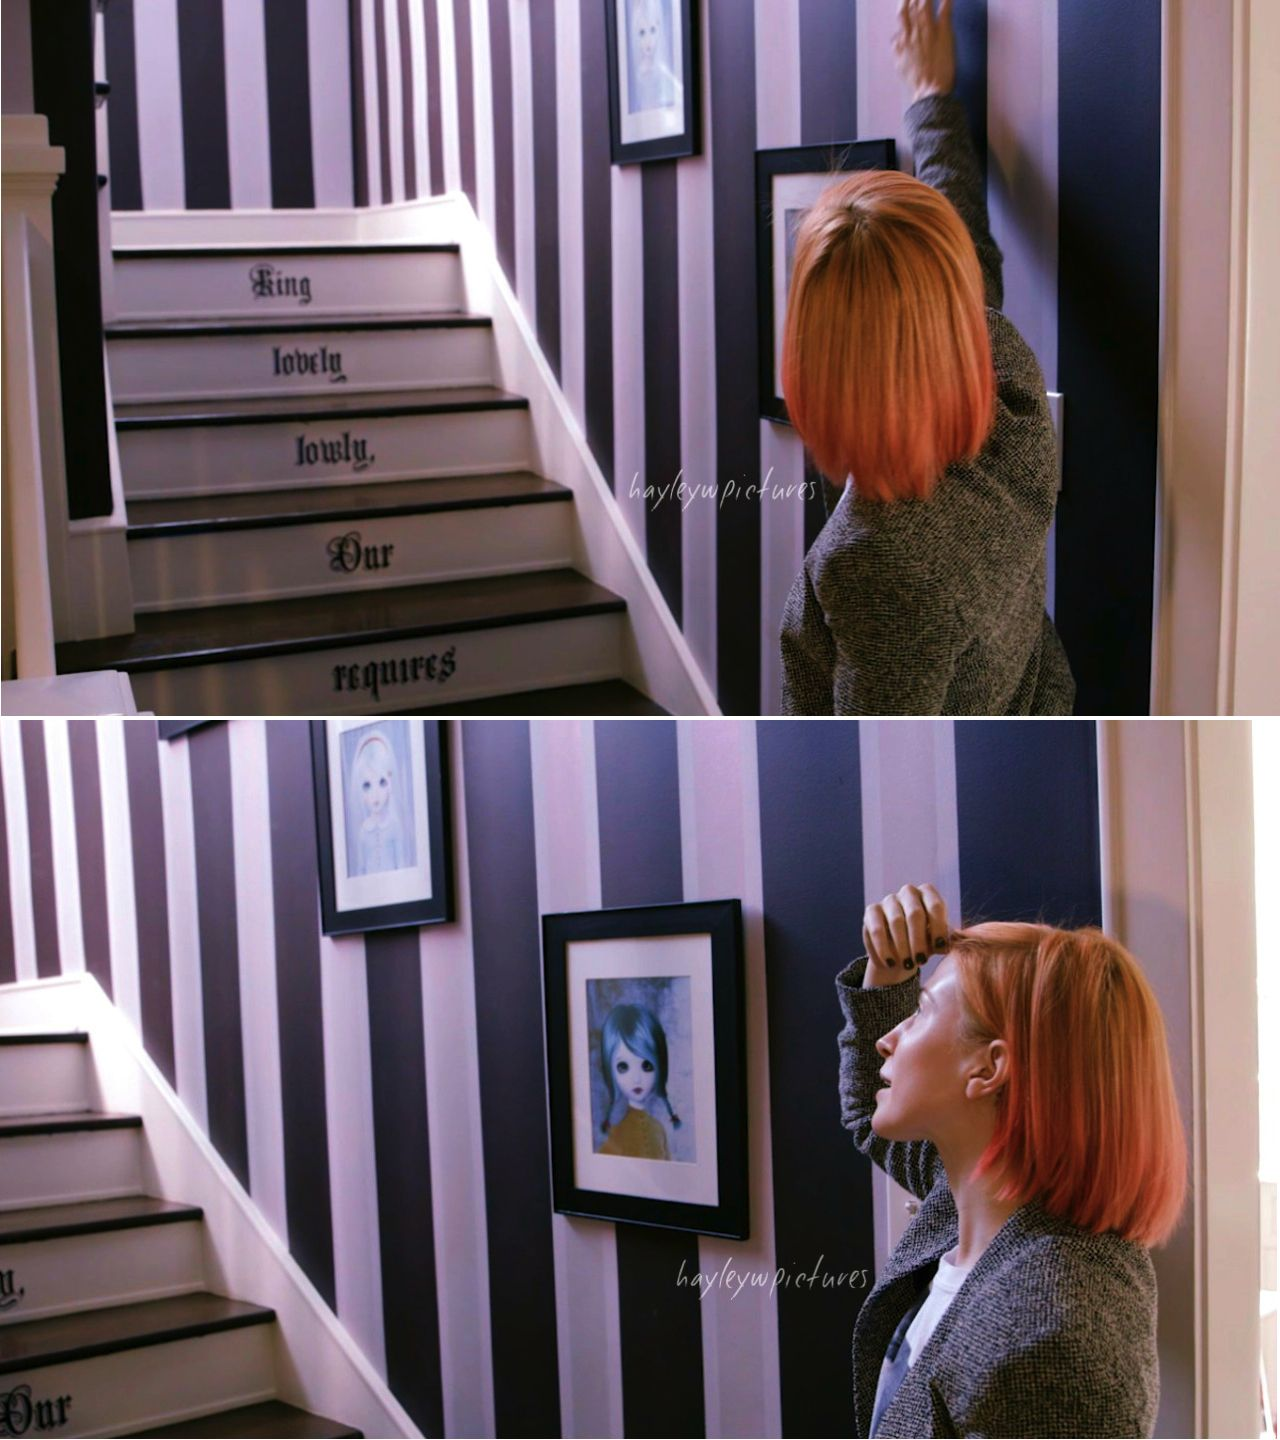 House decorating goals Hayley Williams39 home Future